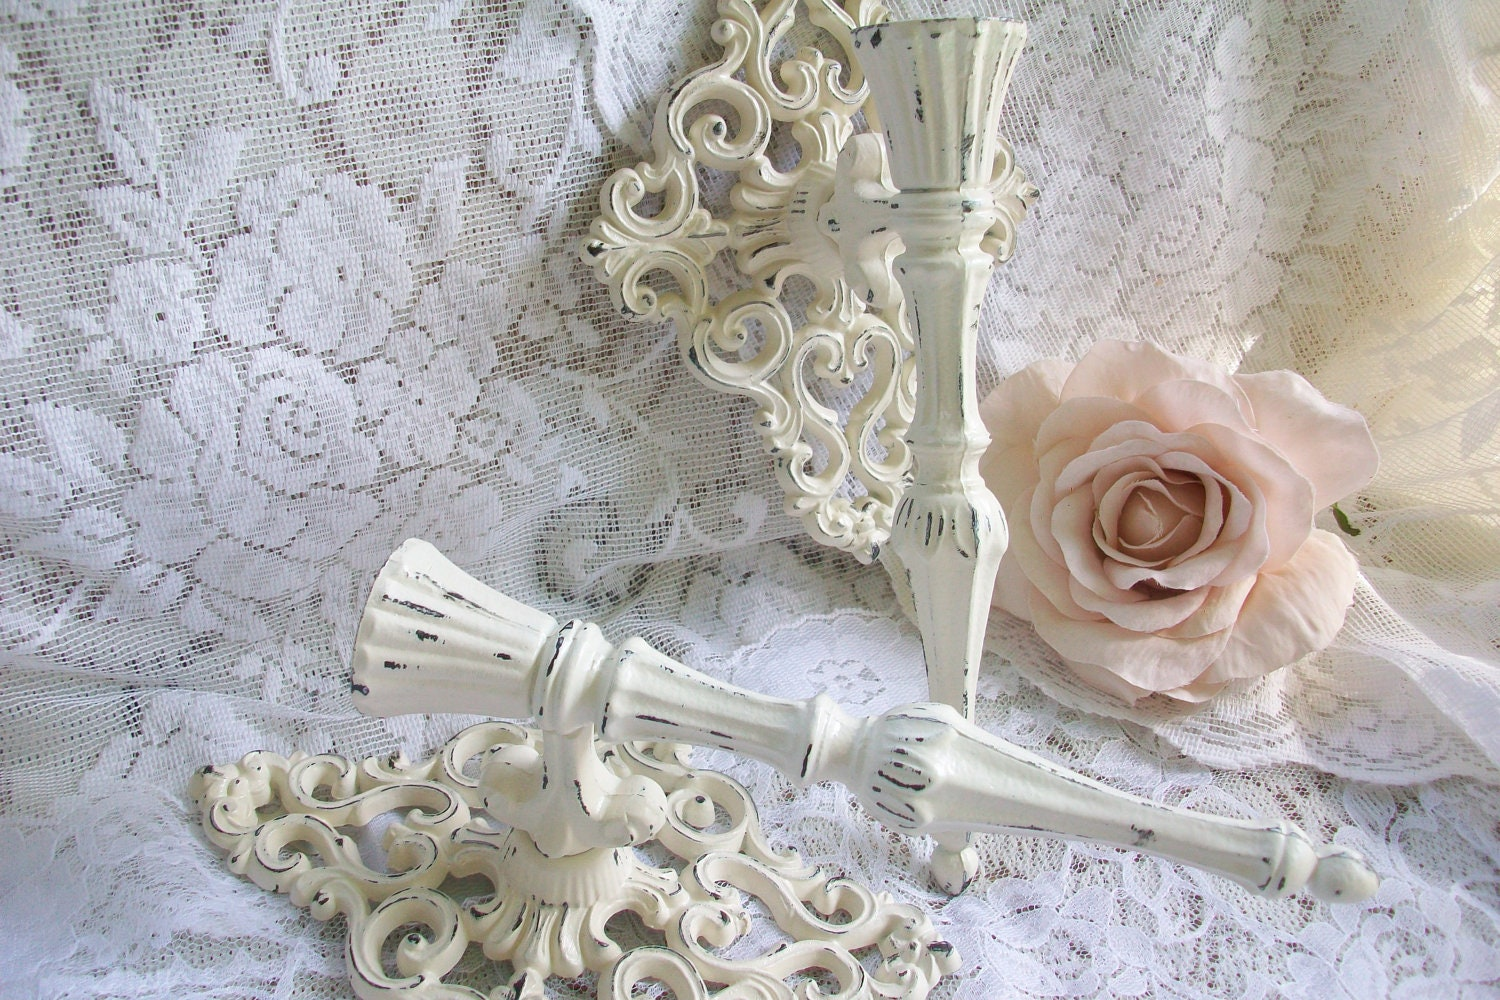 Wall Sconces Shabby Chic : Shabby Chic Decor, Creamy White Sconces, Vintage Candle Wall Sconce S?